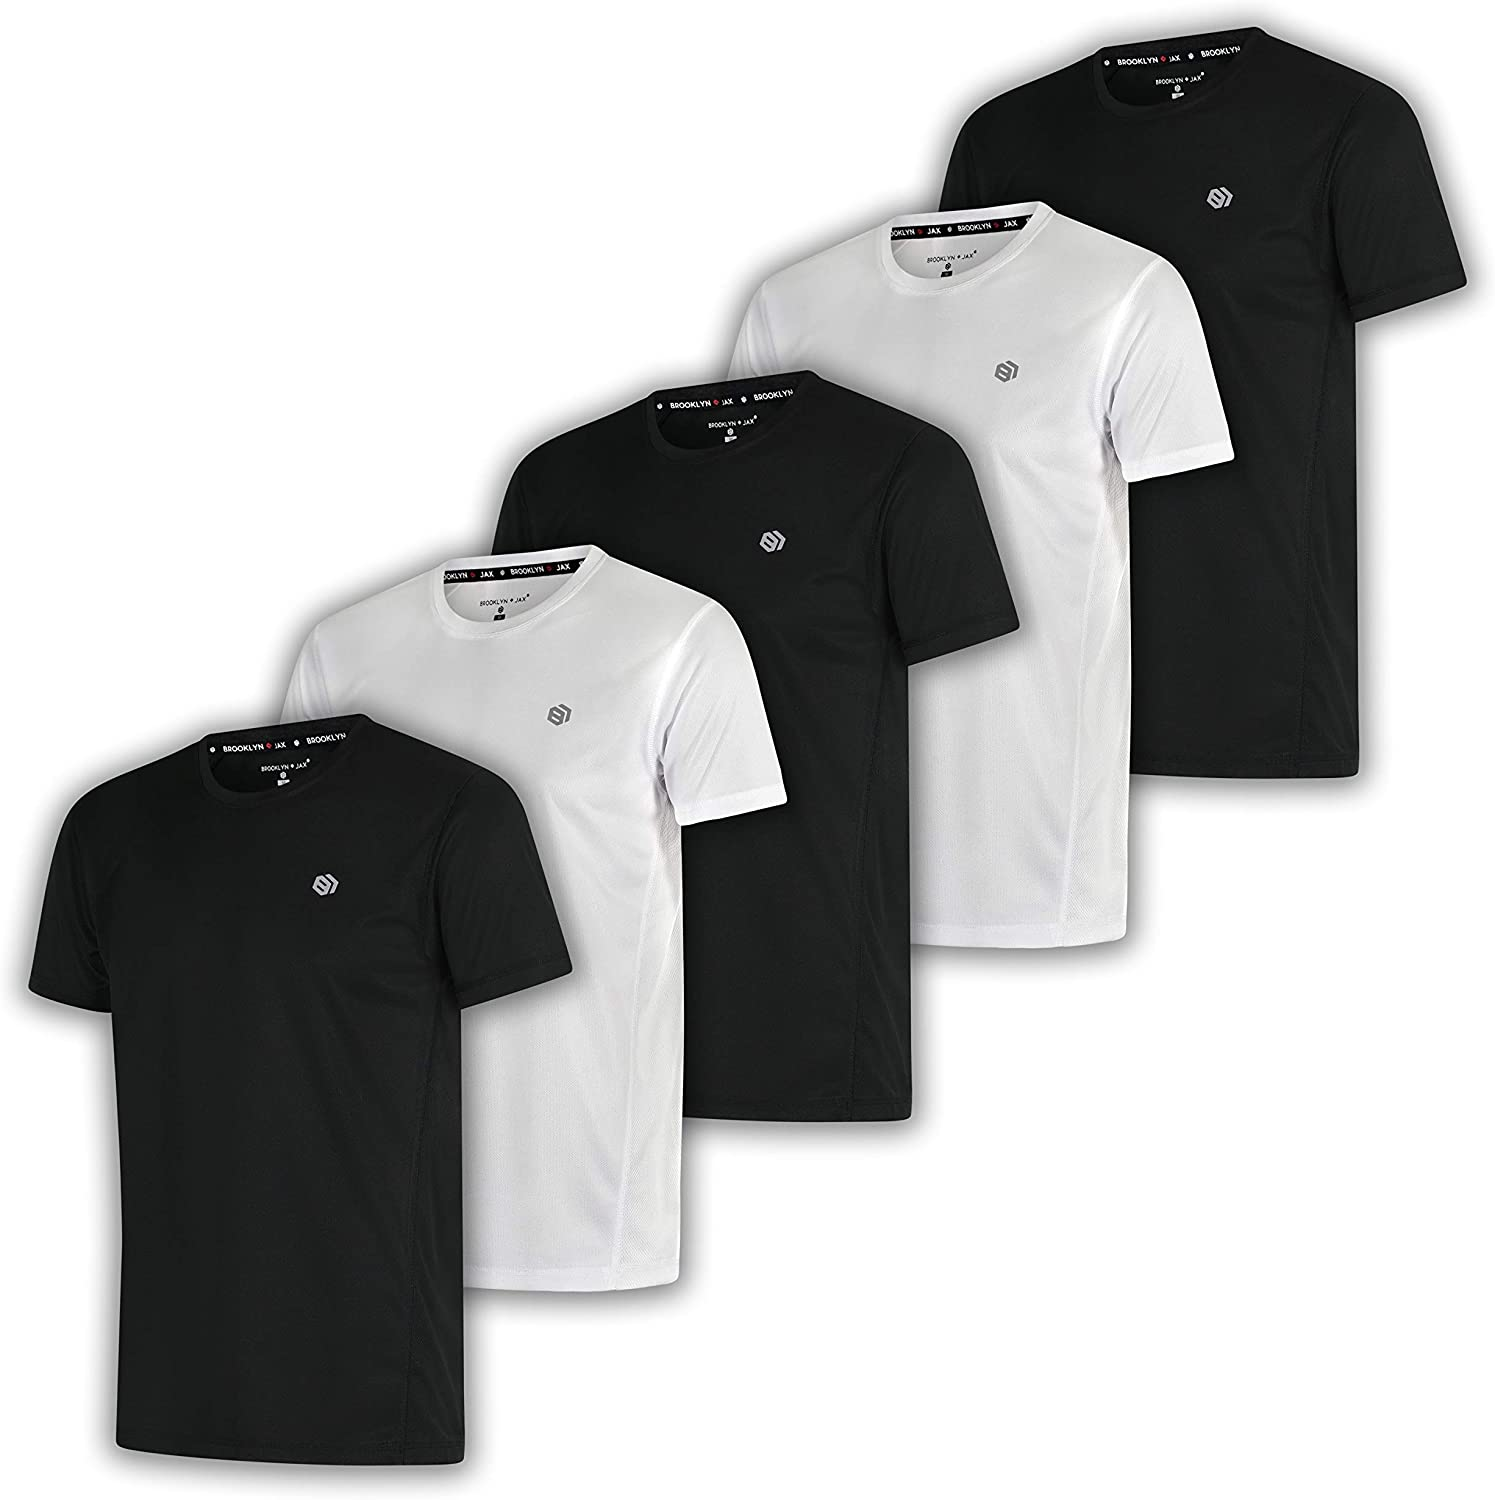 5 Pack: Compression Men's Dry-Fit Moisture Wicking Active Athletic Performance Crew Neck, Active Top